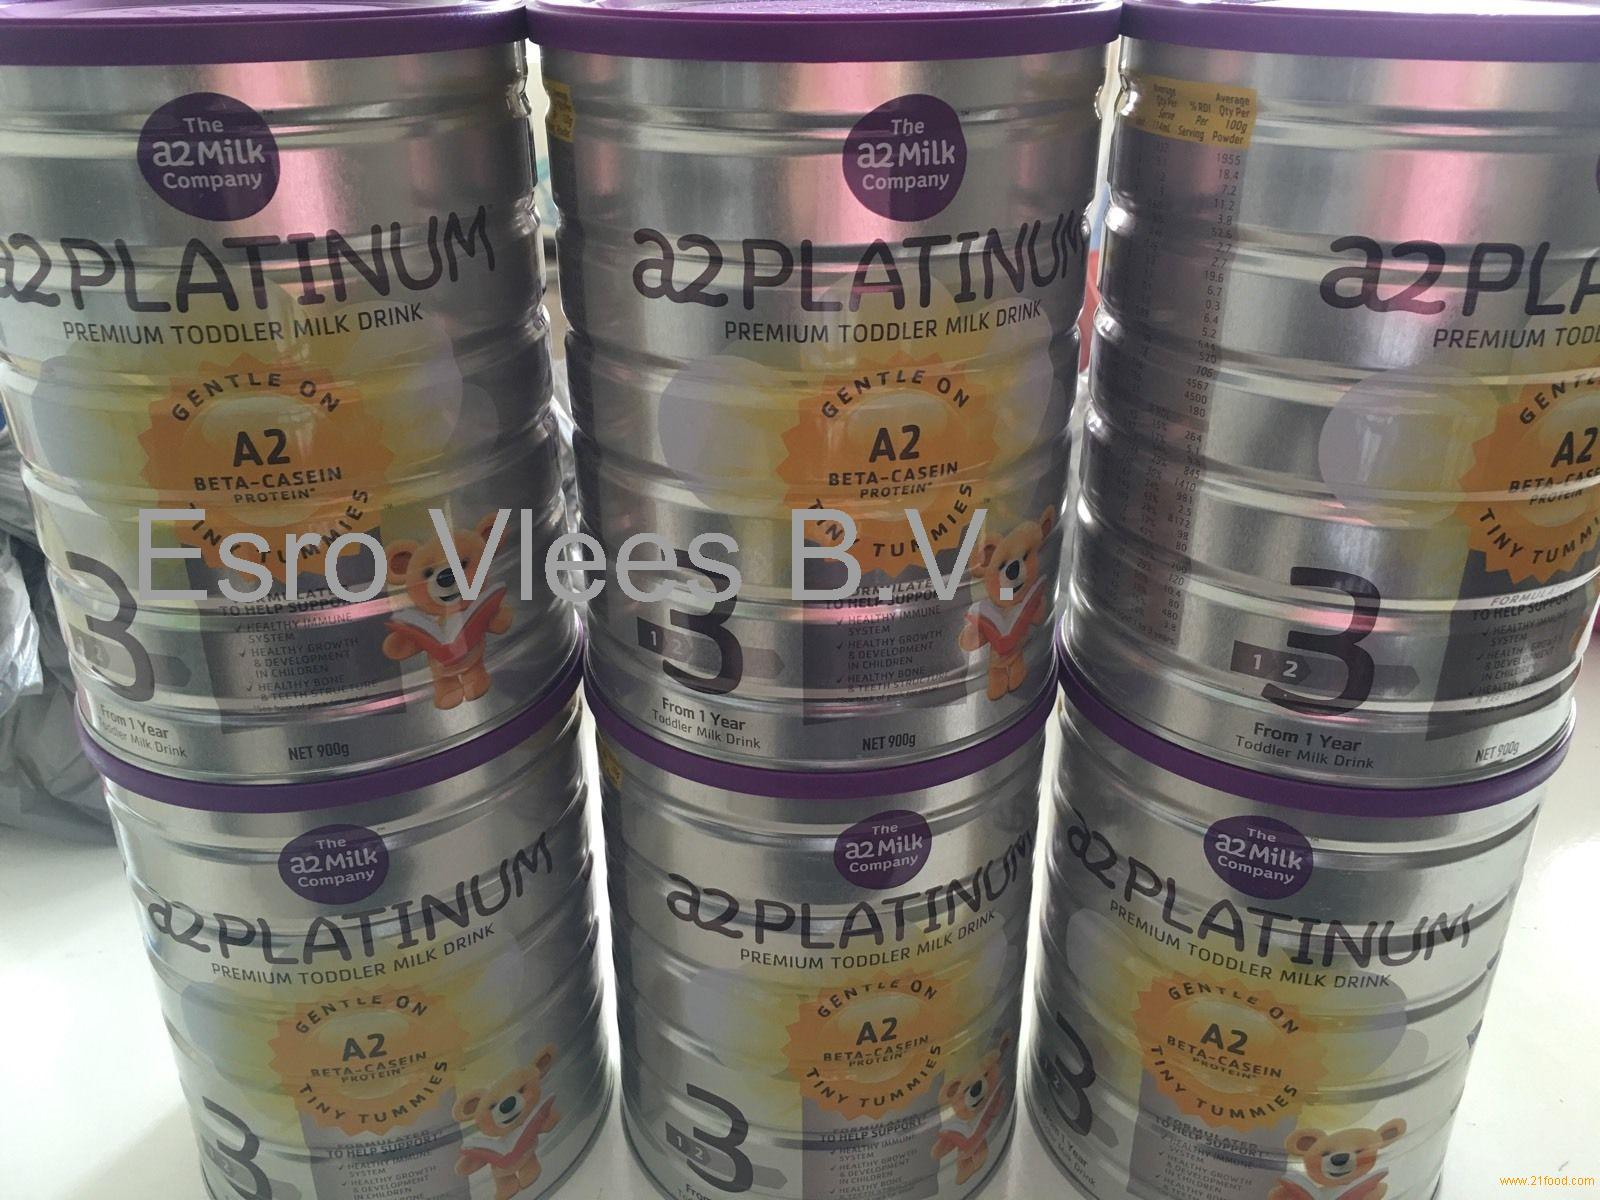 A2 Platinum/ Infant Formula